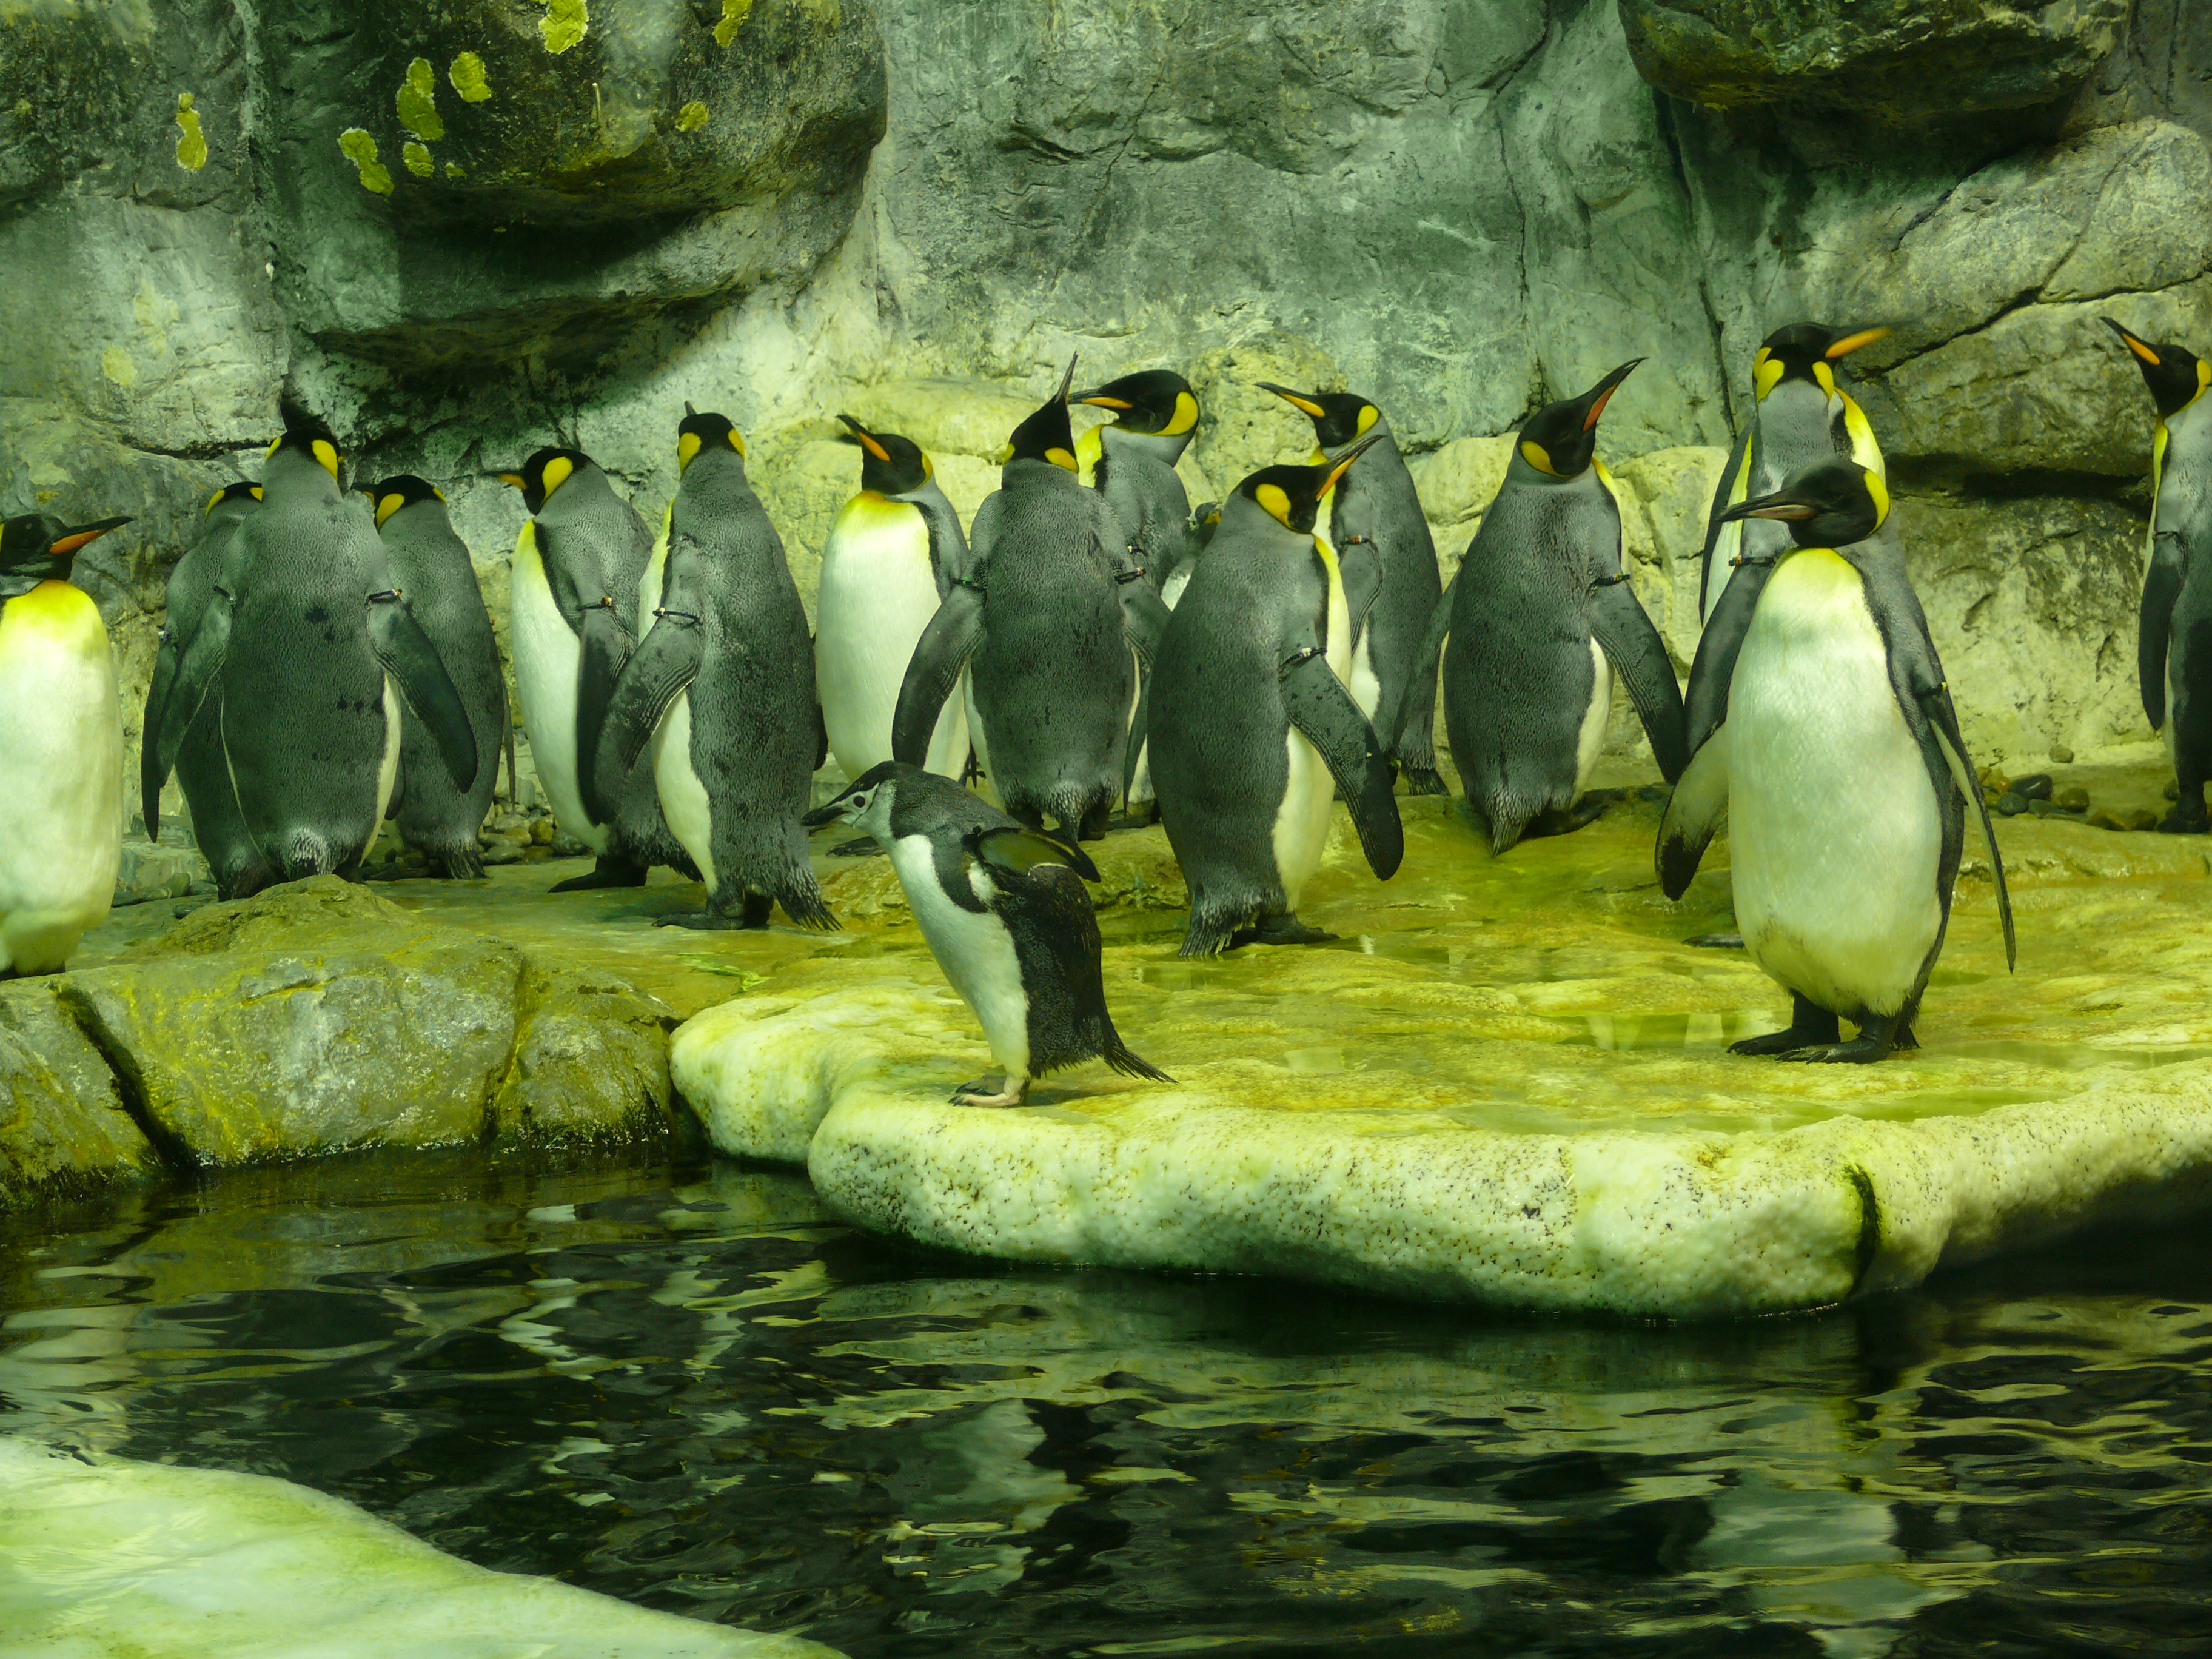 Penguins on display at the Moody Gardens aquarium Pics4Learning